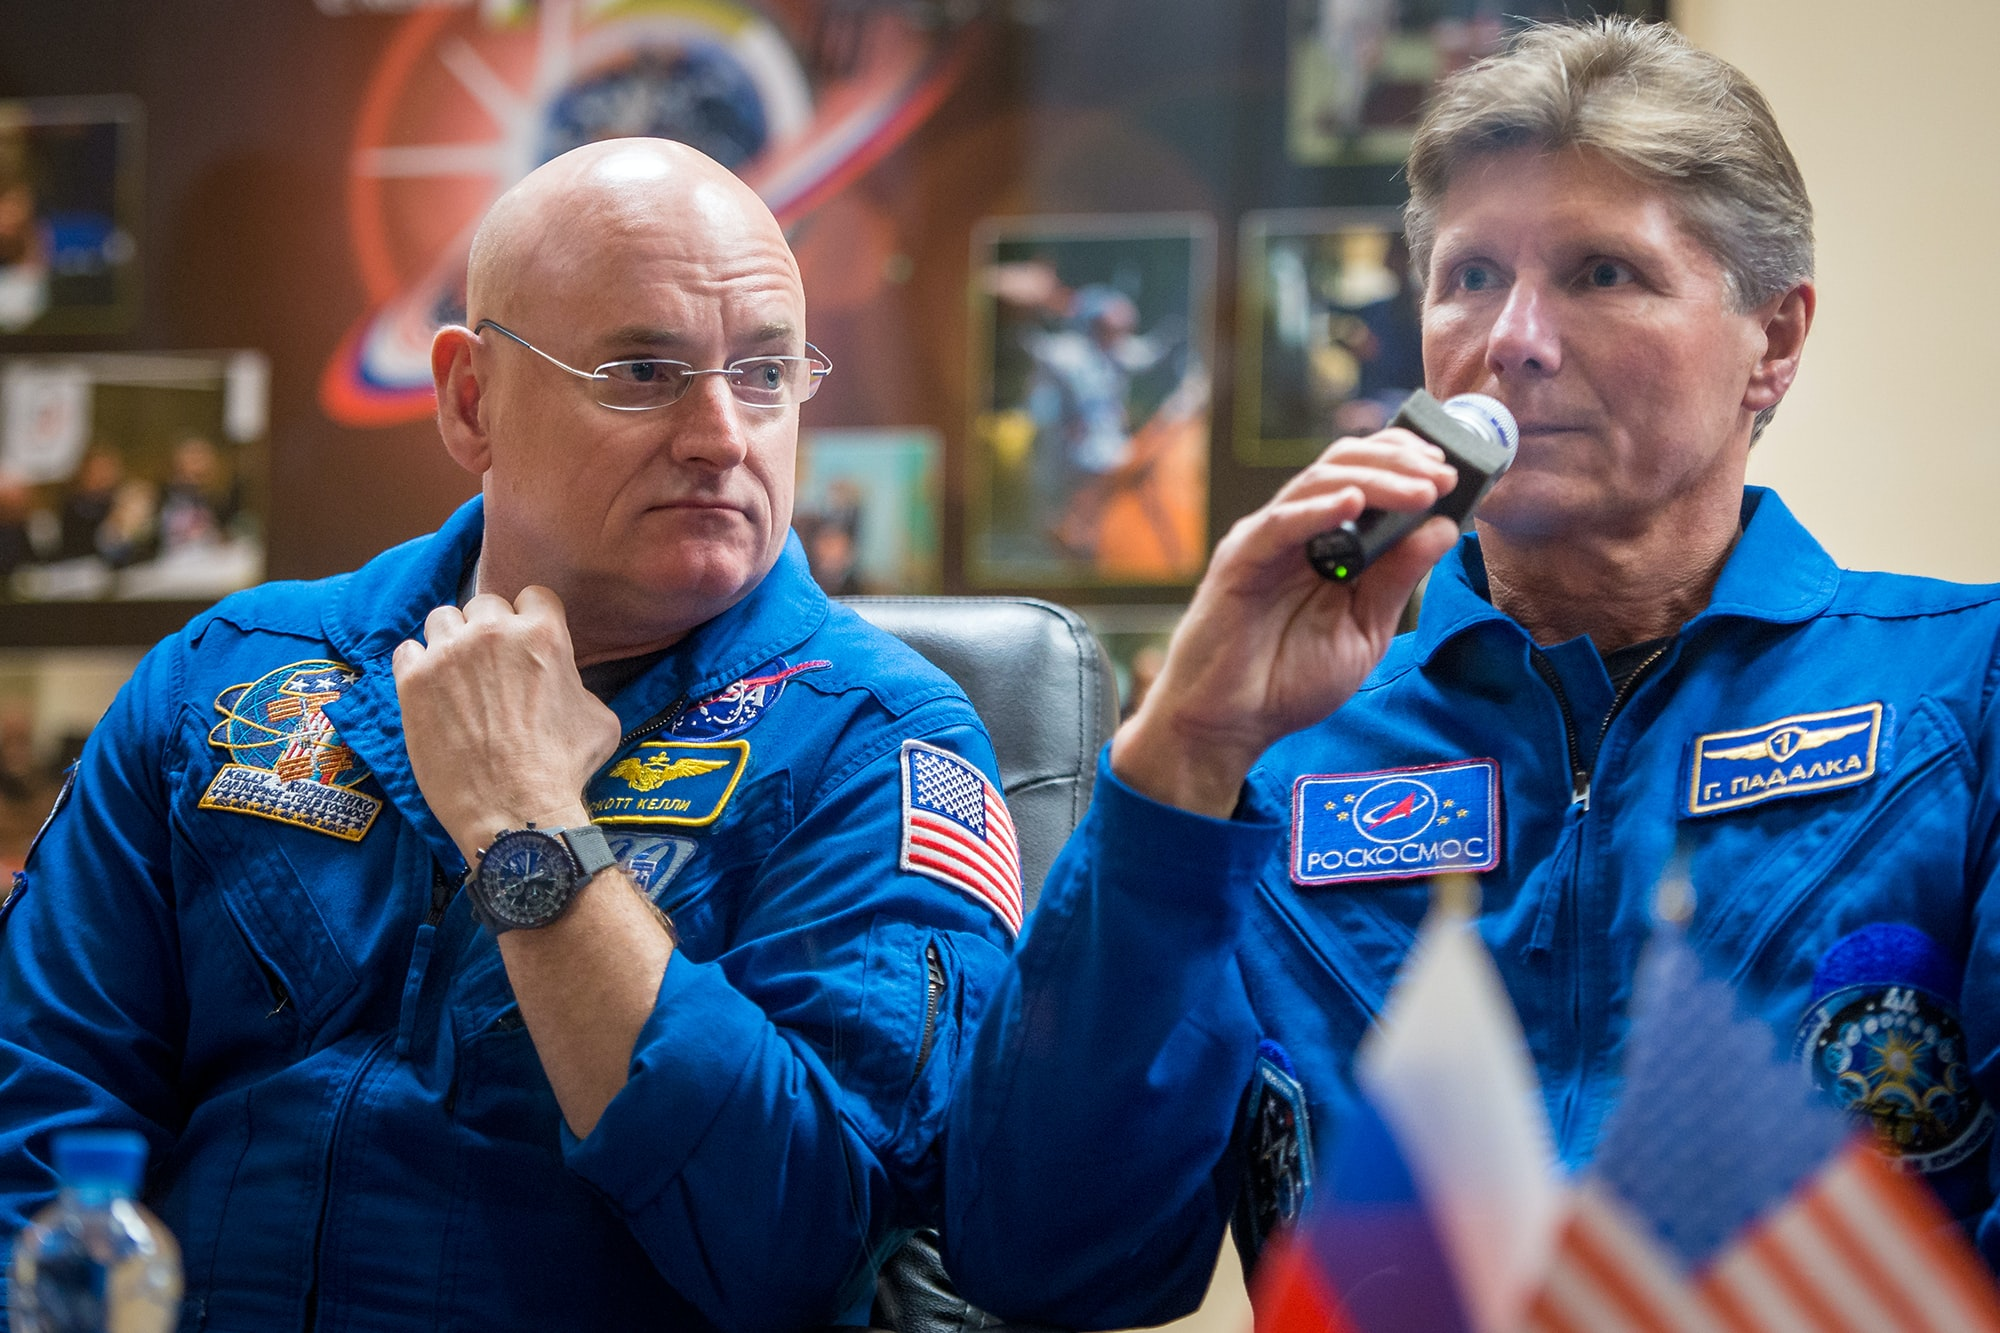 Scott Kelly Breitling Annual Calendar interview The Watches Worn By NASA Astronaut Scott Kelly, Holder Of New U.S. Spaceflight Endurance Record The Watches Worn By NASA Astronaut Scott Kelly, Holder Of New U.S. Spaceflight Endurance Record 06 16359937353 0f2274ec93 o